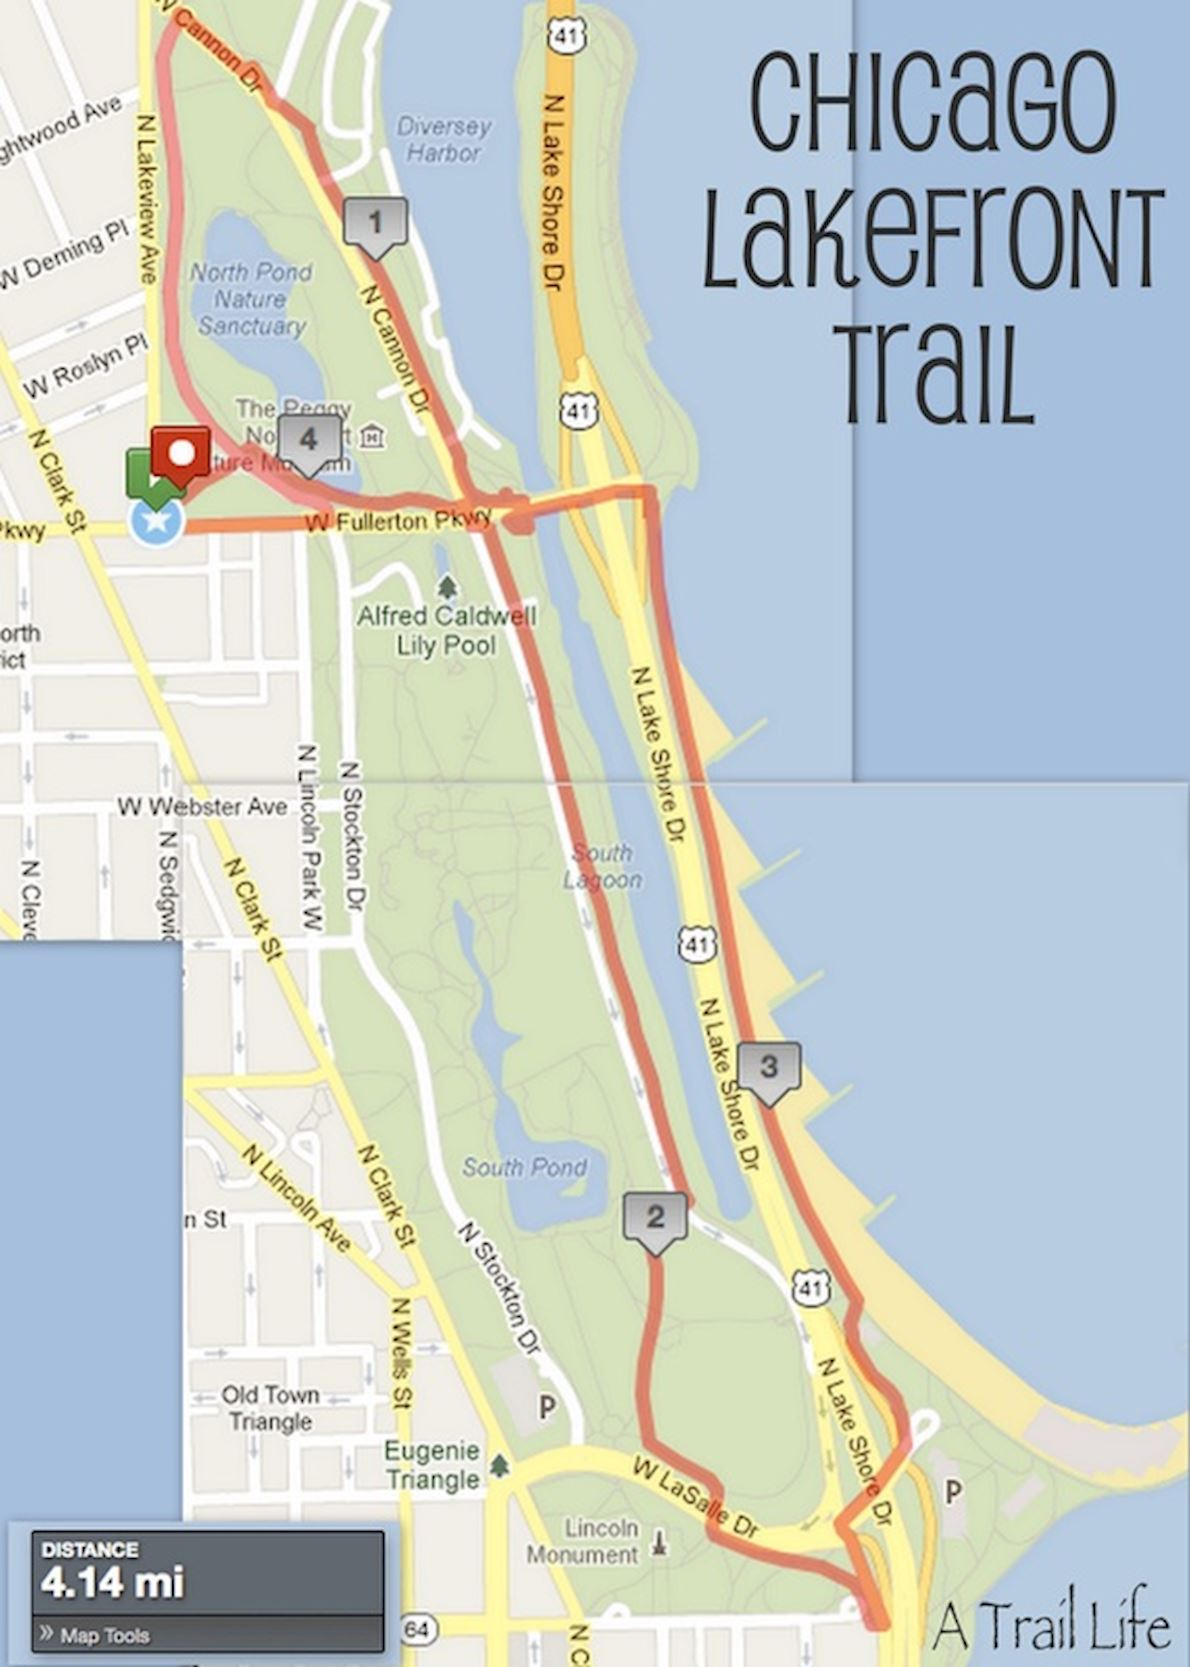 Chicago Lakefront 50K George Cheung Memorial Race Route Map